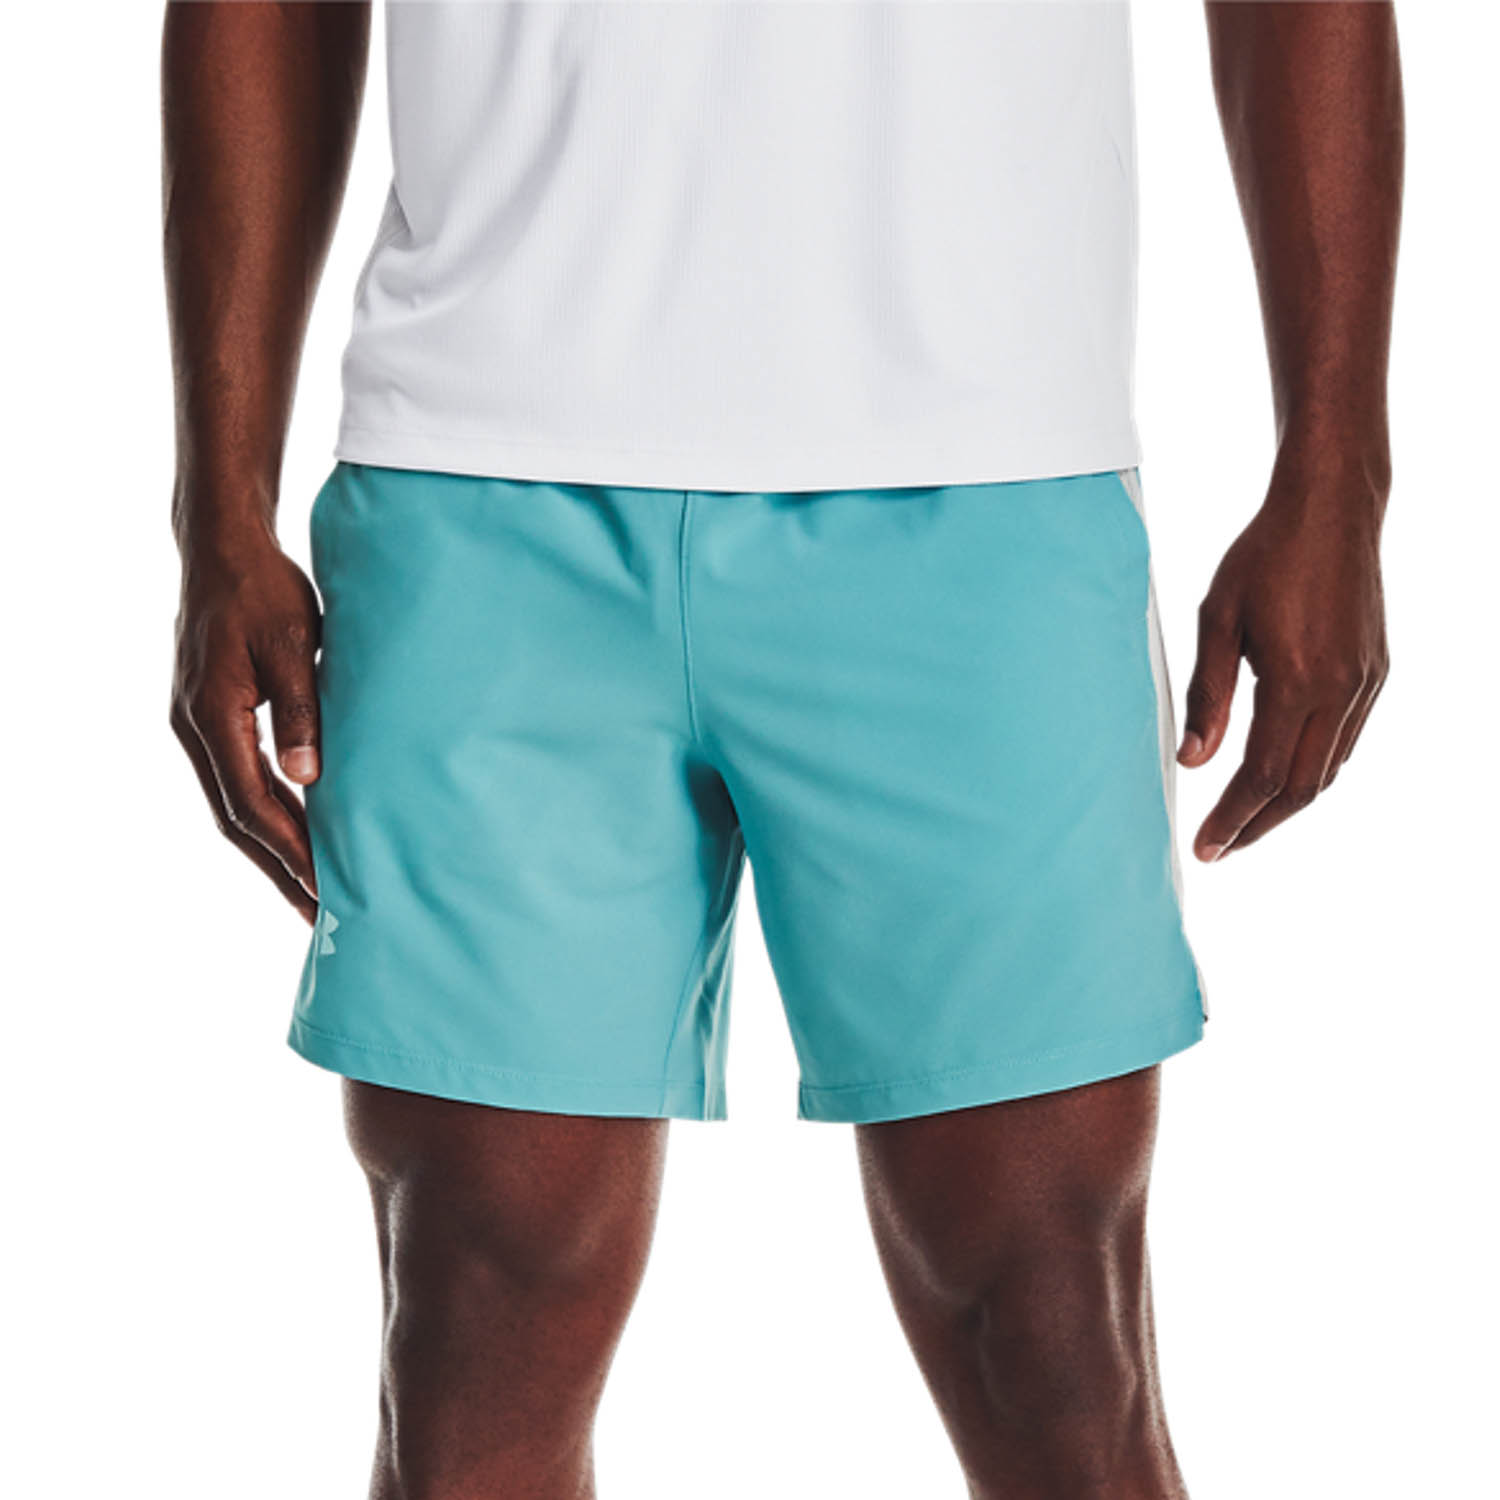 Under Armour Launch 7in Shorts - Cosmos/Halo Gray/Reflective